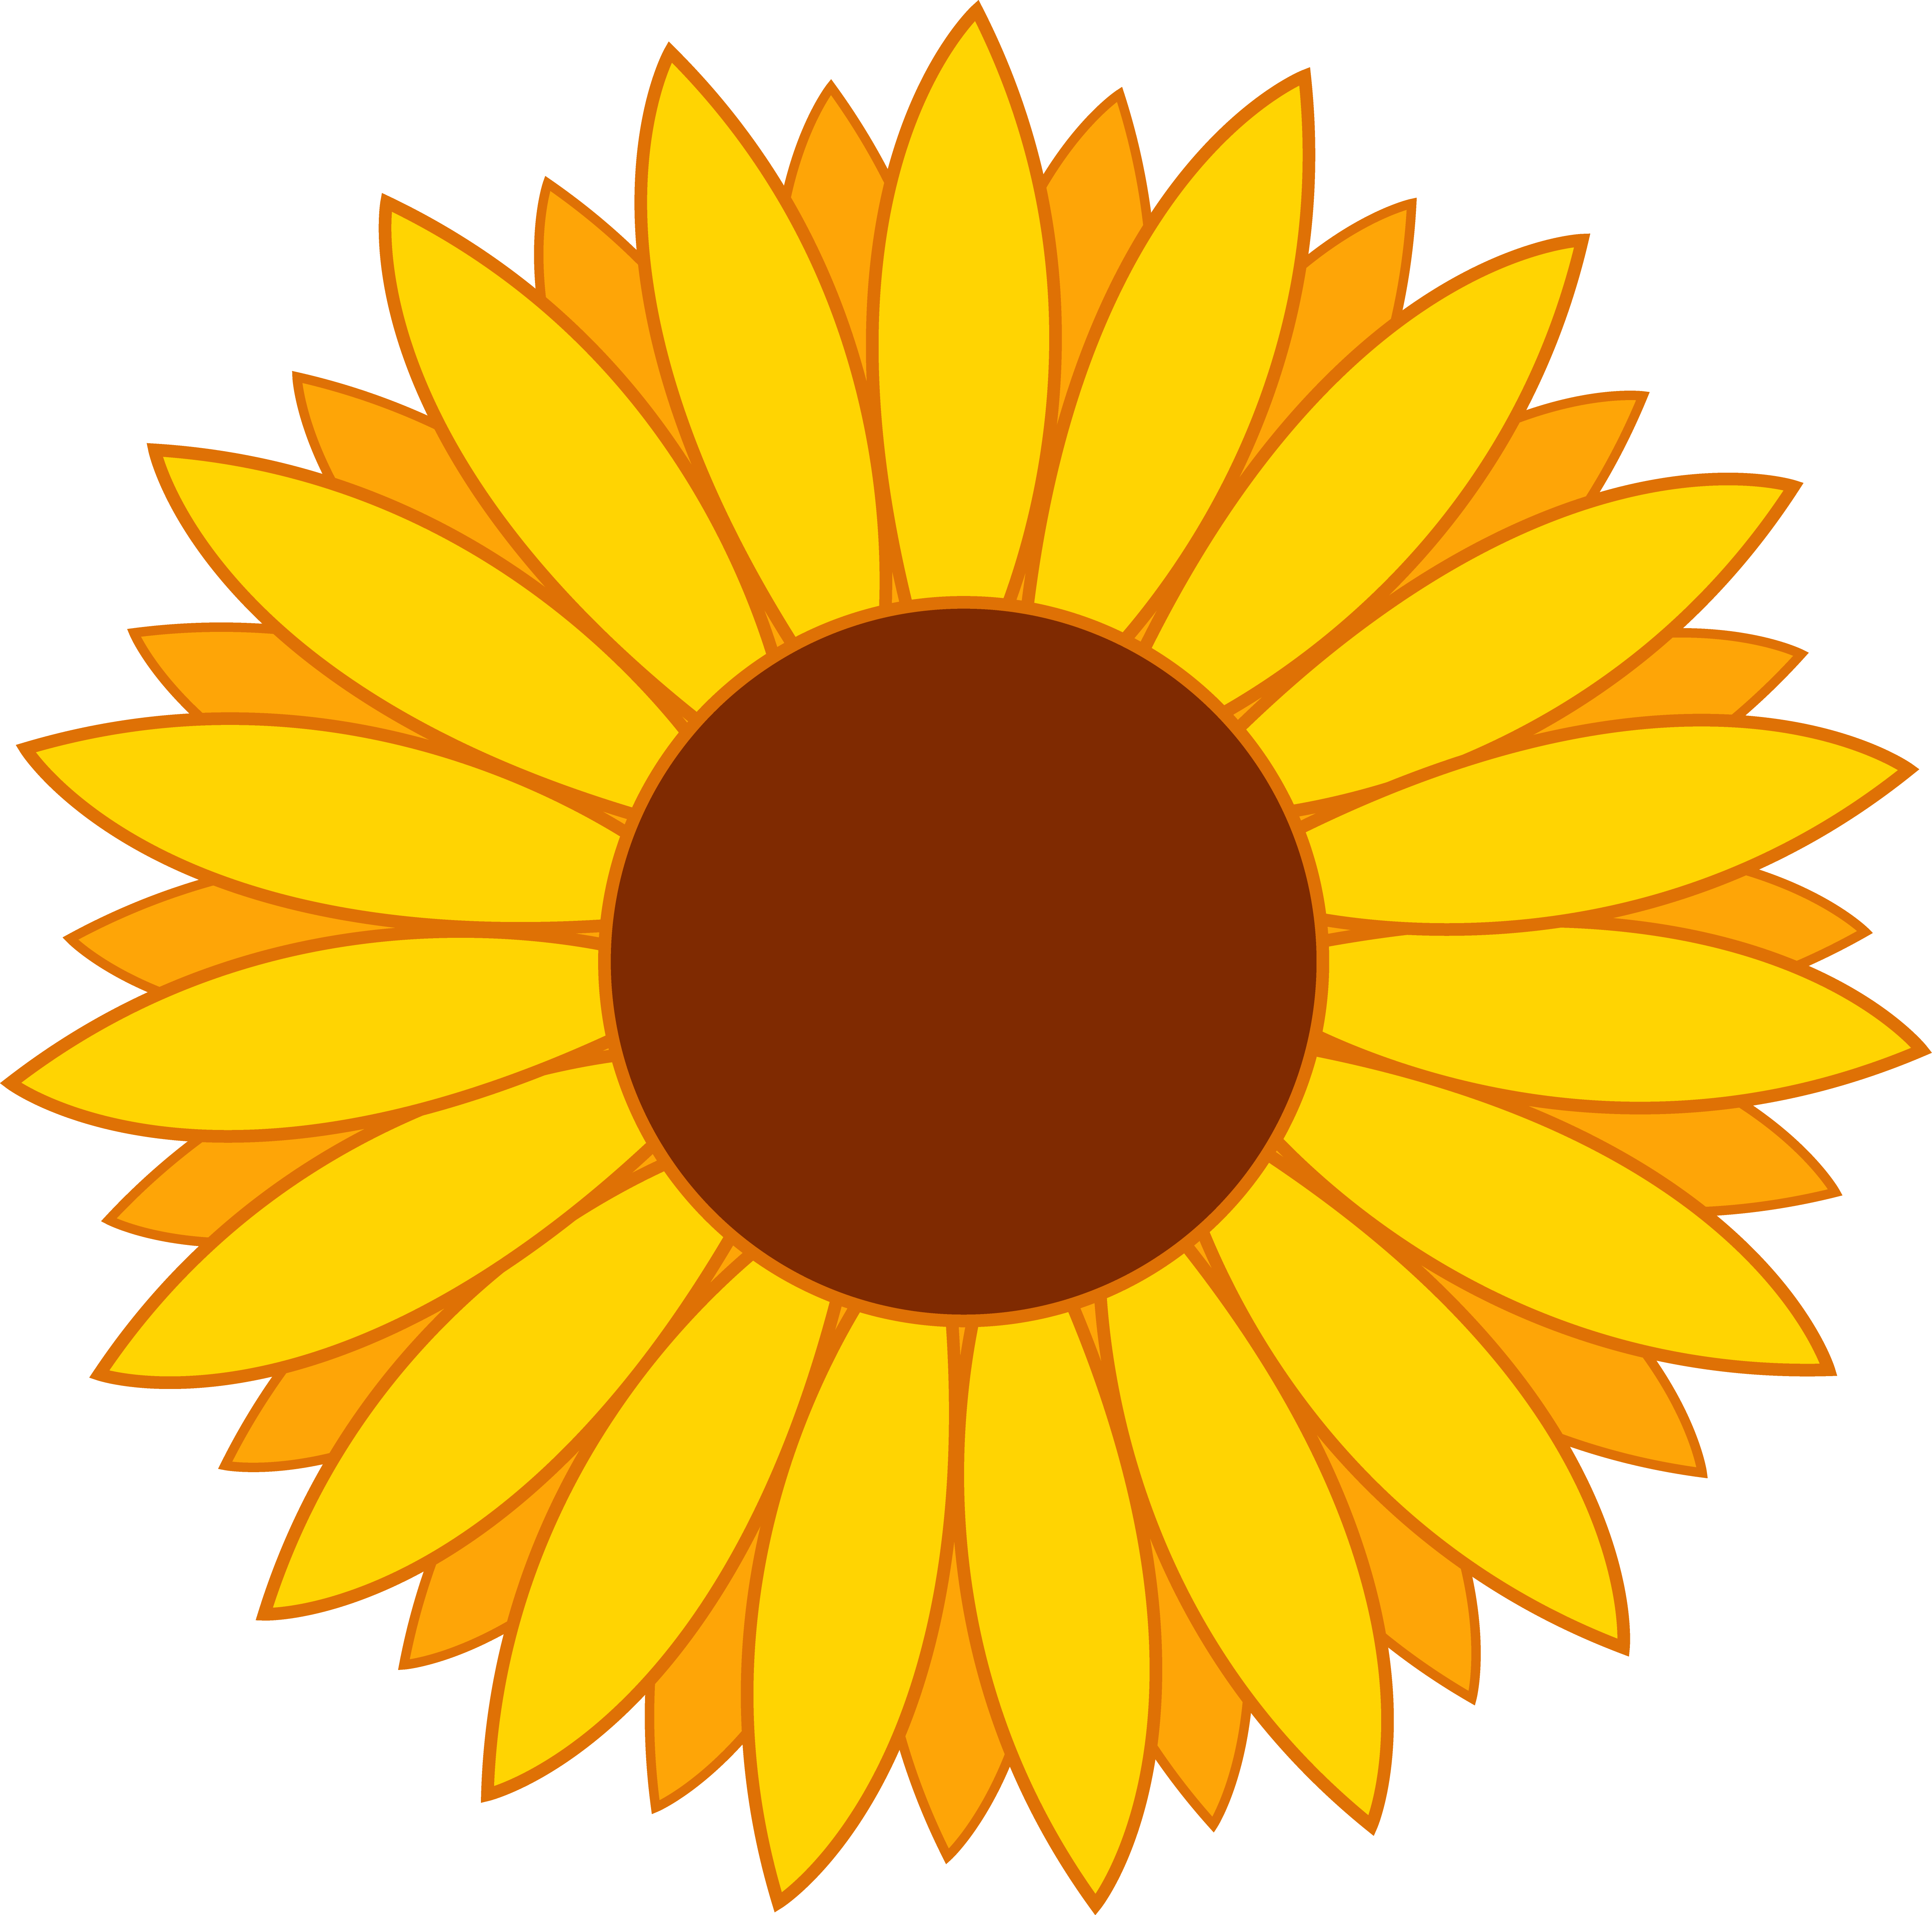 Sunflowers png animated. Collection of free